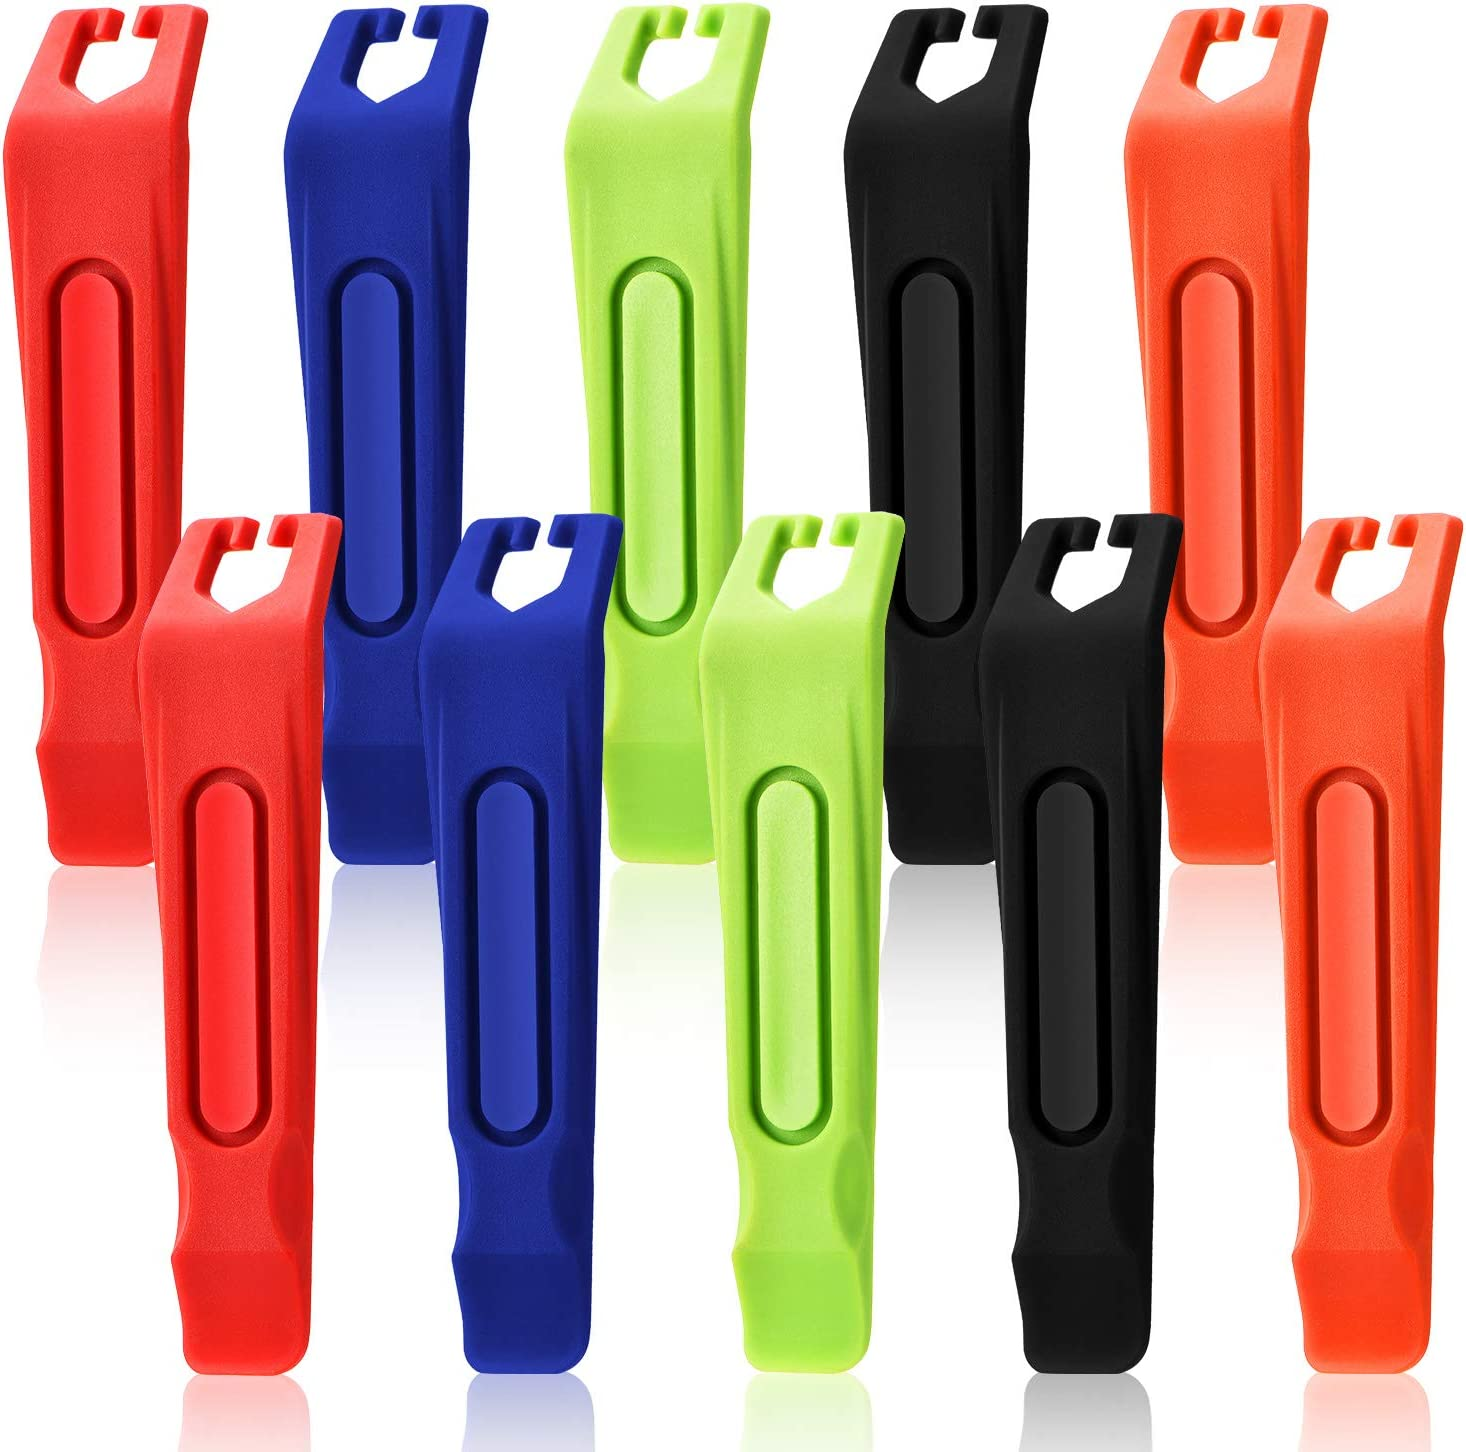 5 Colors 10 Pieces Bicycle Tire Levers Plastic Bike Tire Levers Bicycle Tire Changing Tools for Tire Repairing Changing